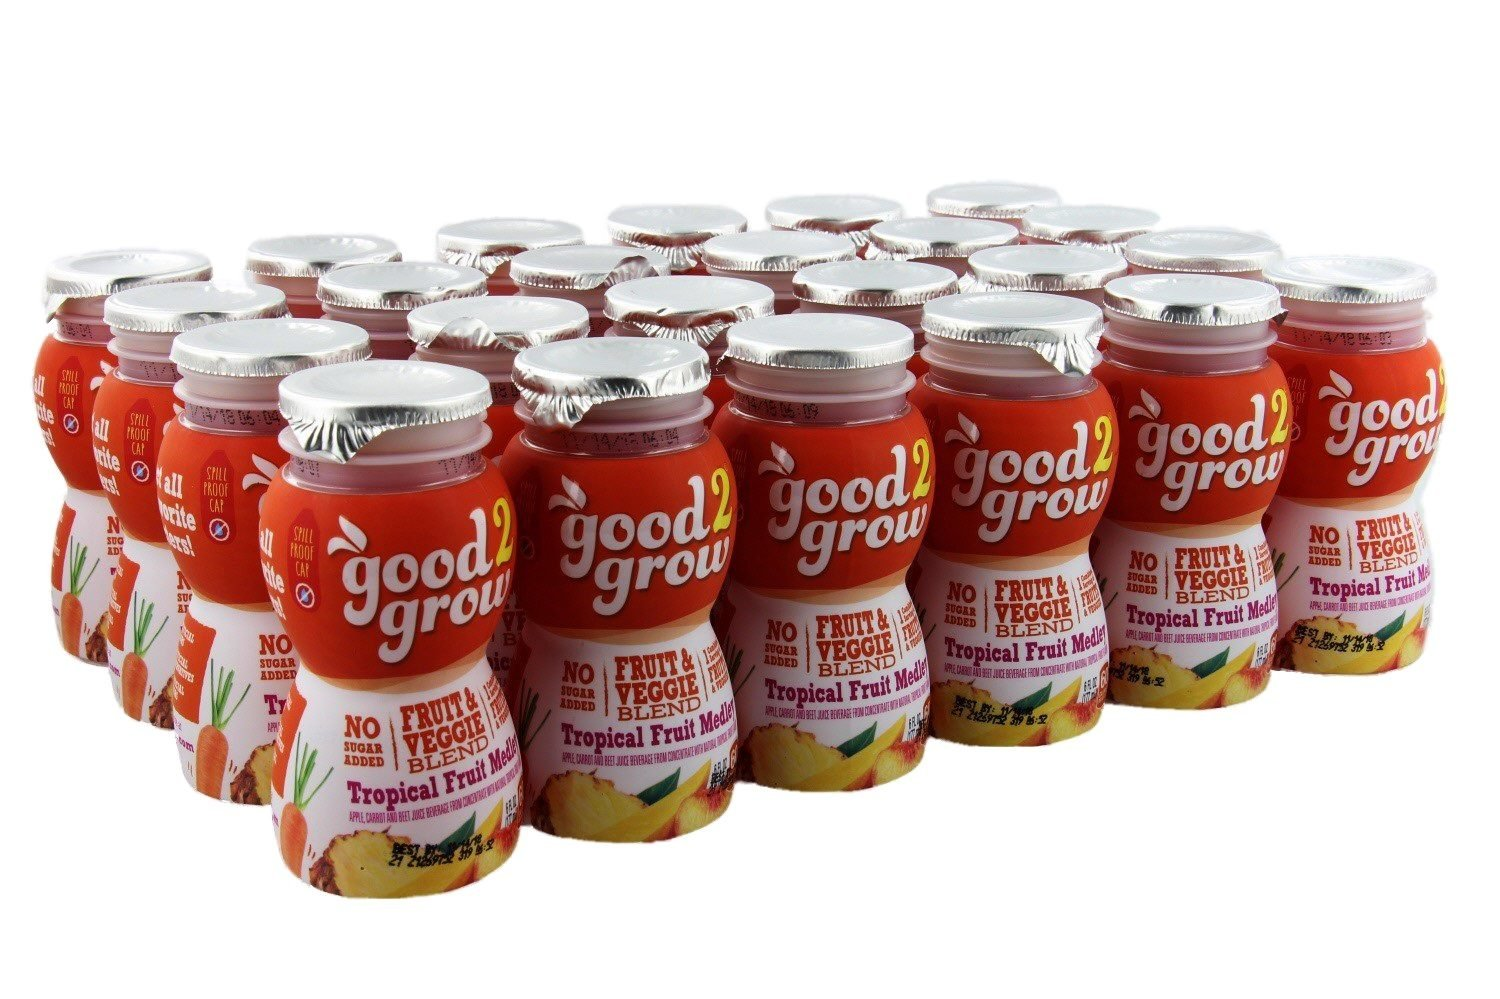 good2grow Tropical Fruit Medley Juice Bottles, 6-Ounce Good2grow Refills, 24 Pack - 22% Less Sugar Than 100% Juice, non-GMO, BPA-Free, Good Vitamin C Source - Use with Spill-Proof Good2grow Toppers by good2grow